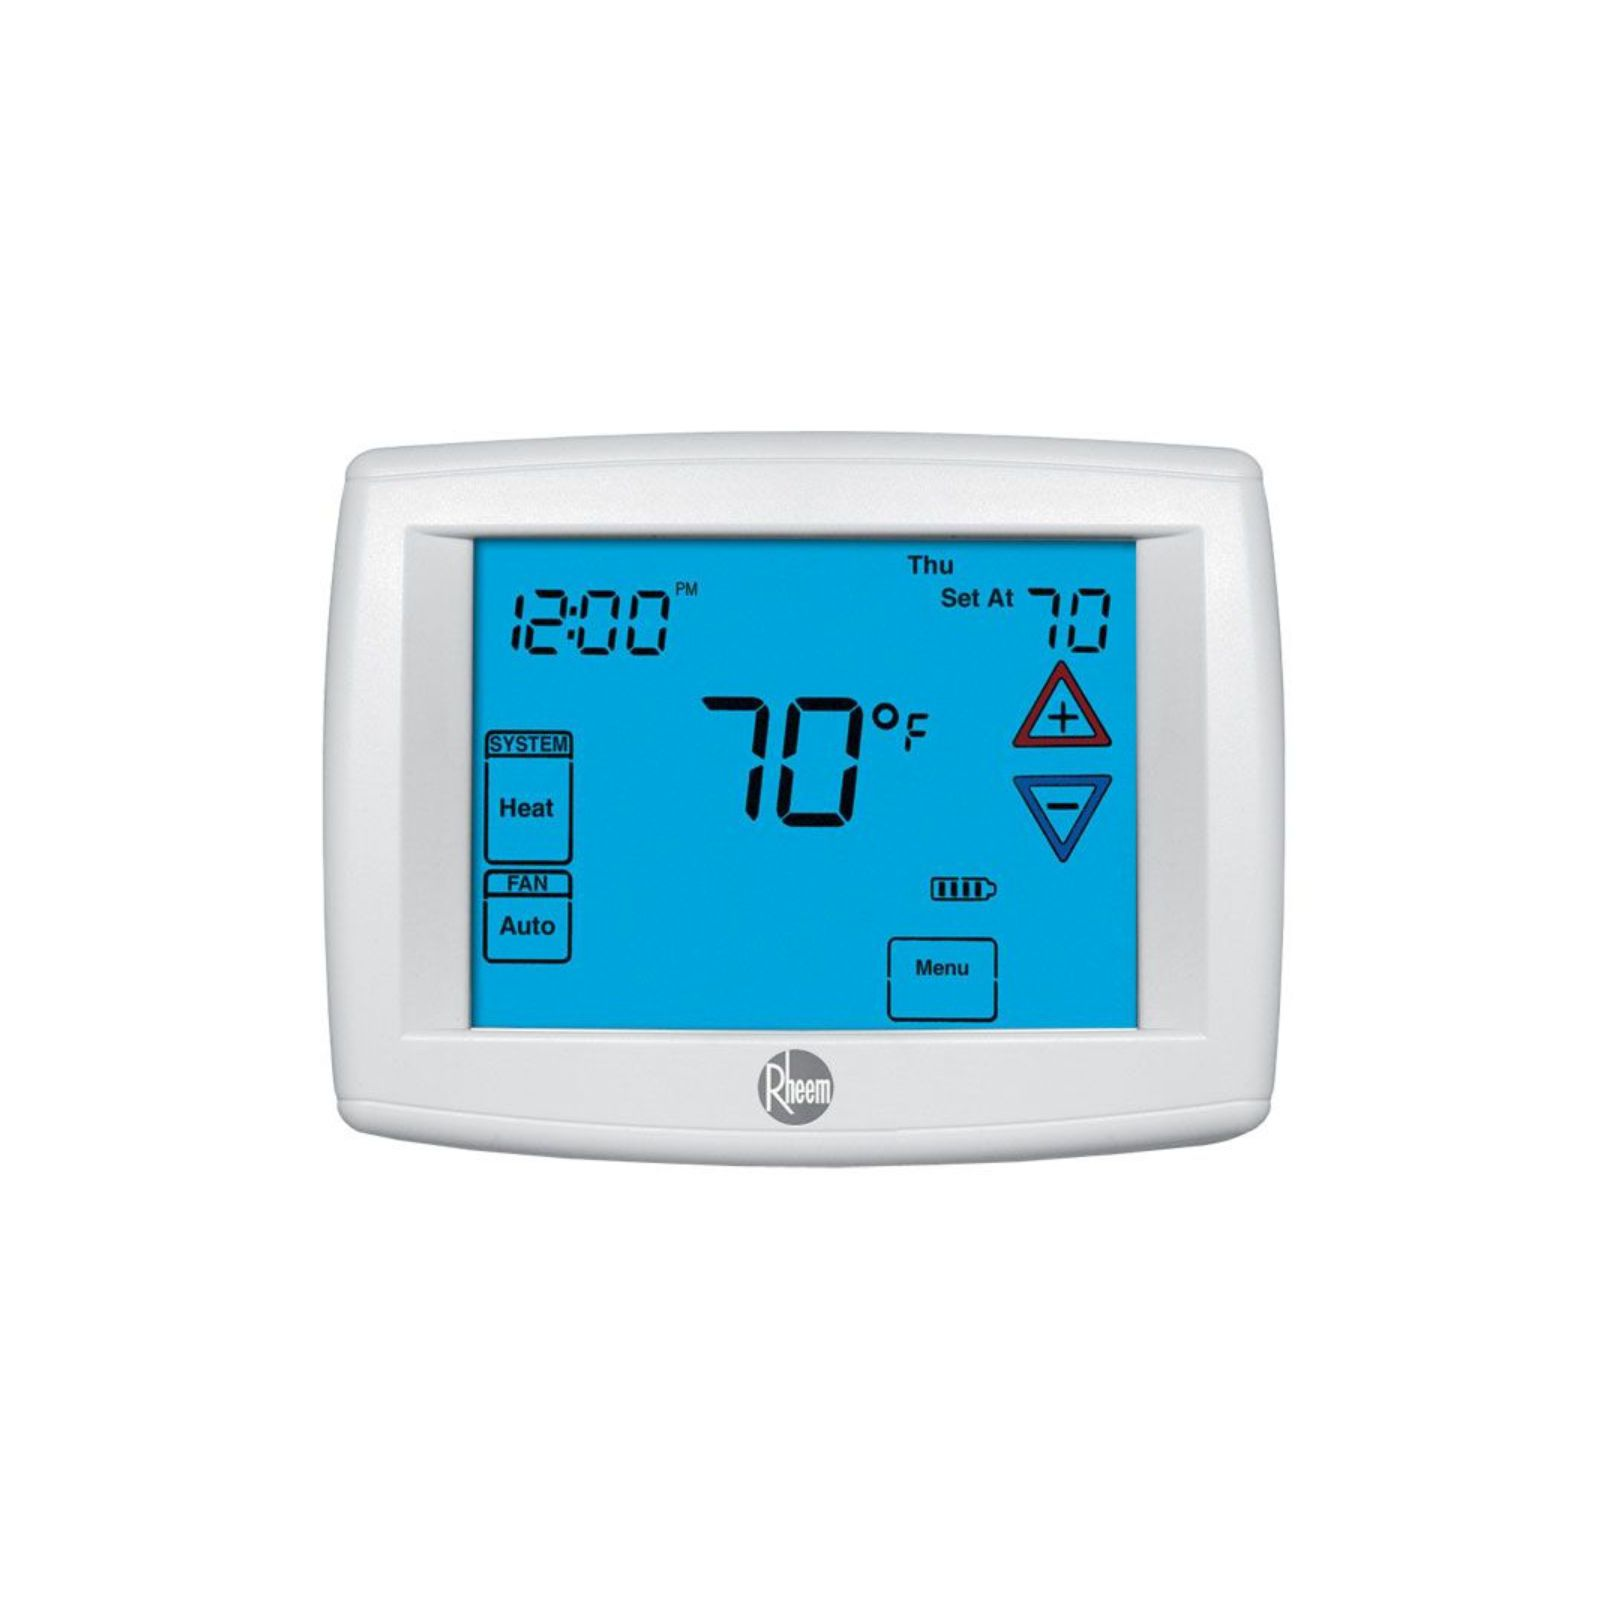 Rheem RHC-TST301GESS -  Touchscreen Thermostat (GE/HP: 1H/1C)